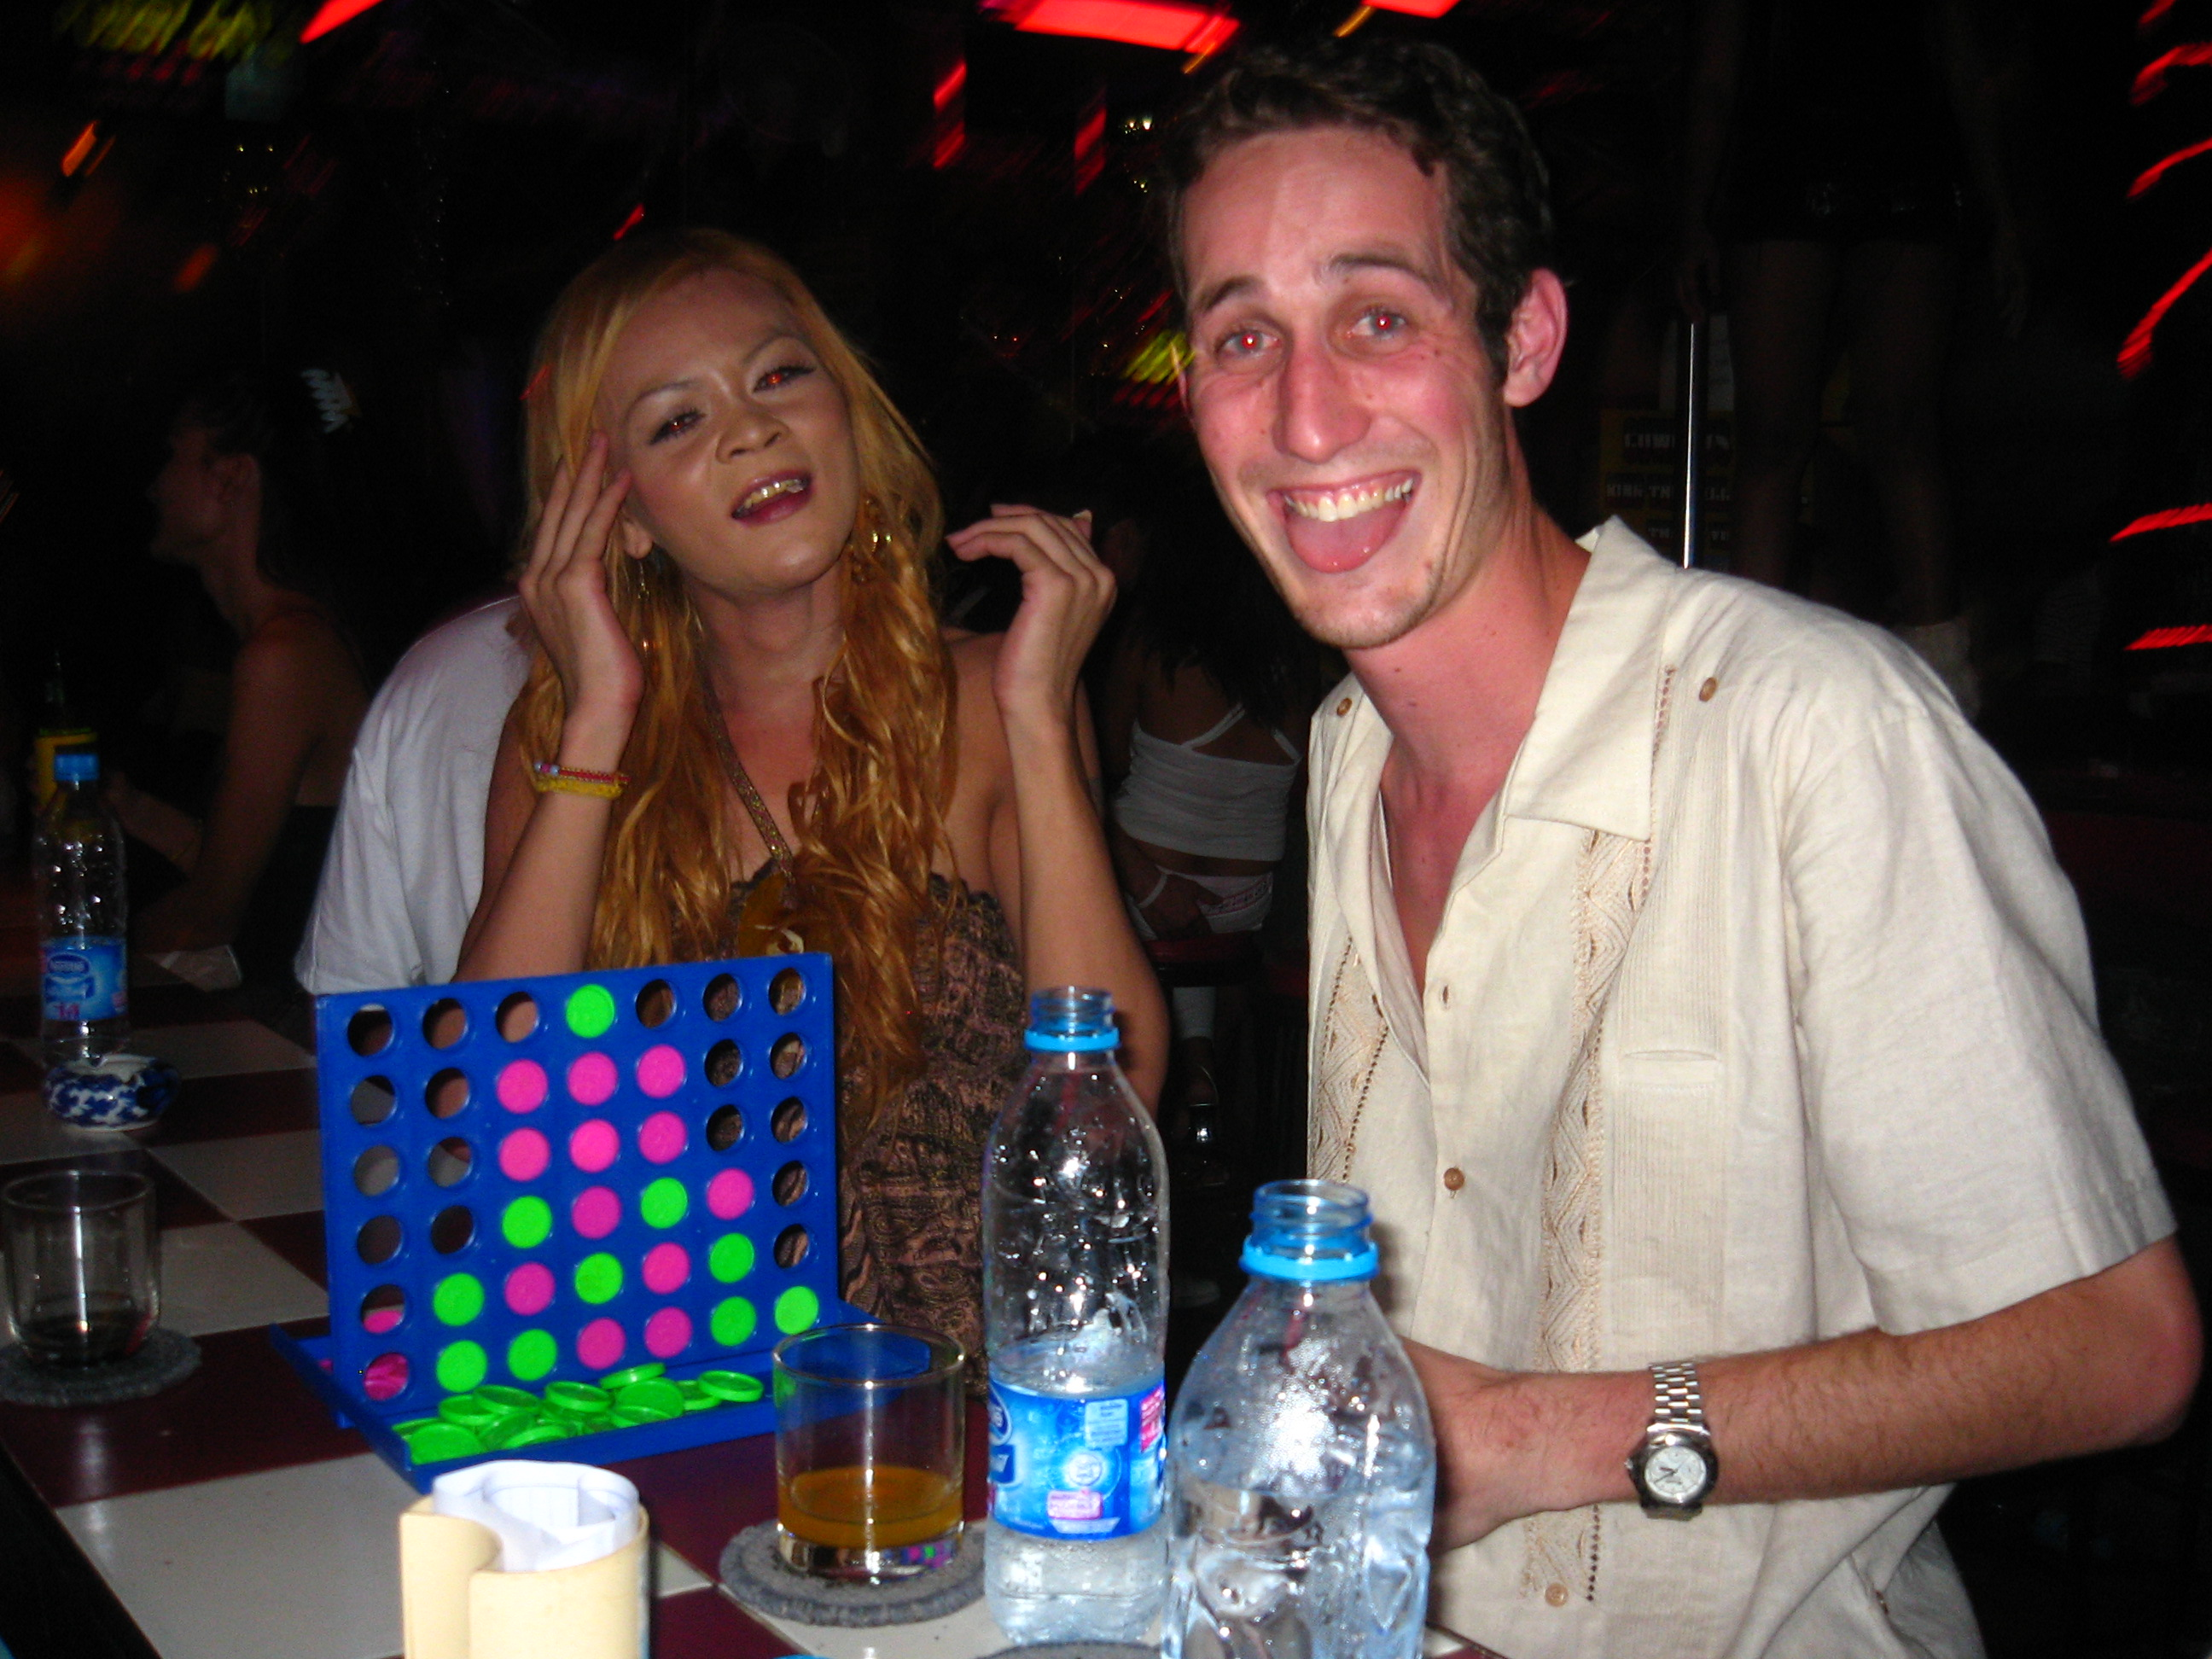 Connect 4 With a LadyBoy